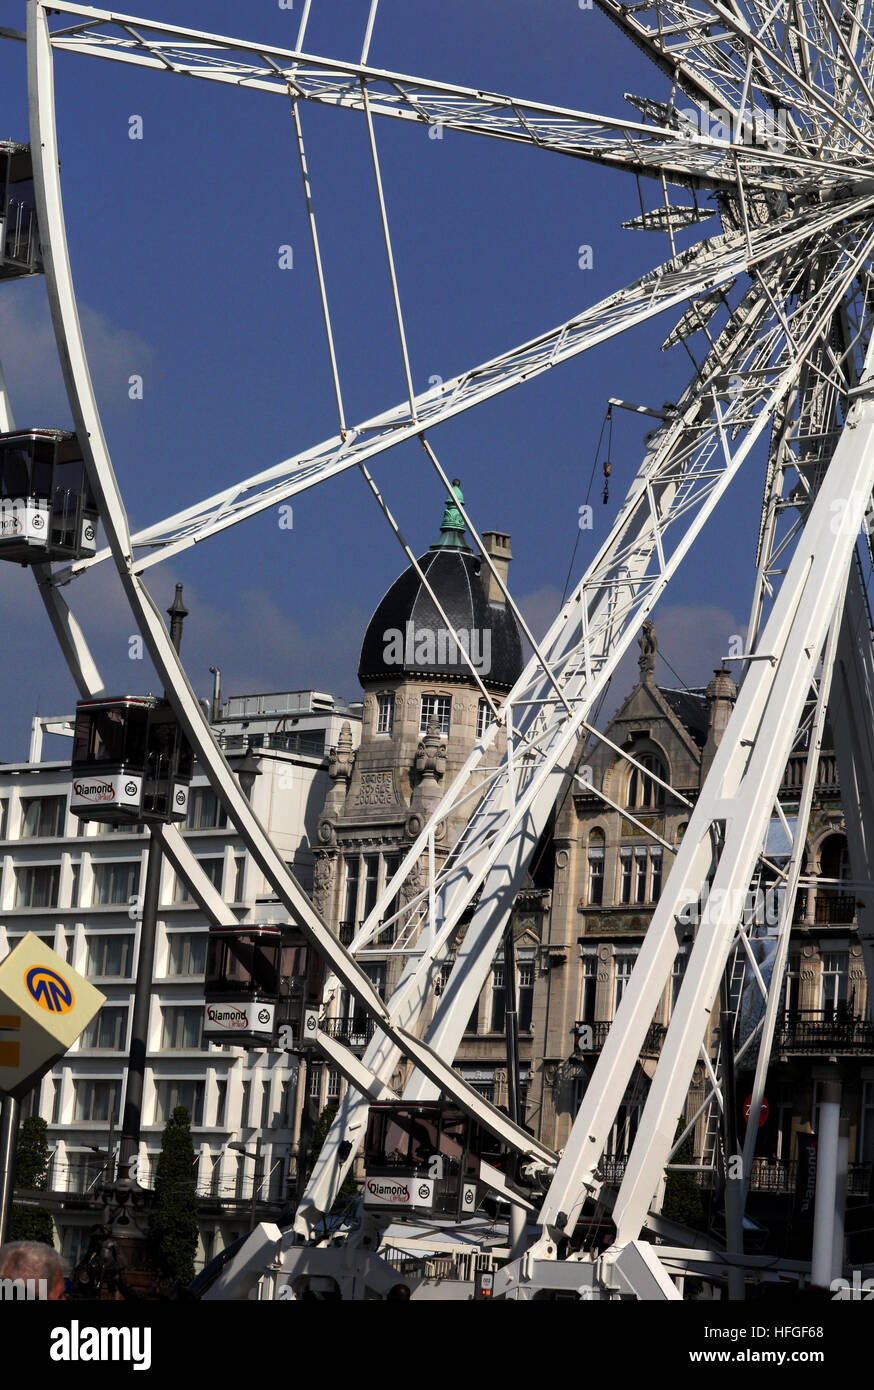 Ferris wheel of Antwerp and the architecture behind the amusement ride Stock Photo